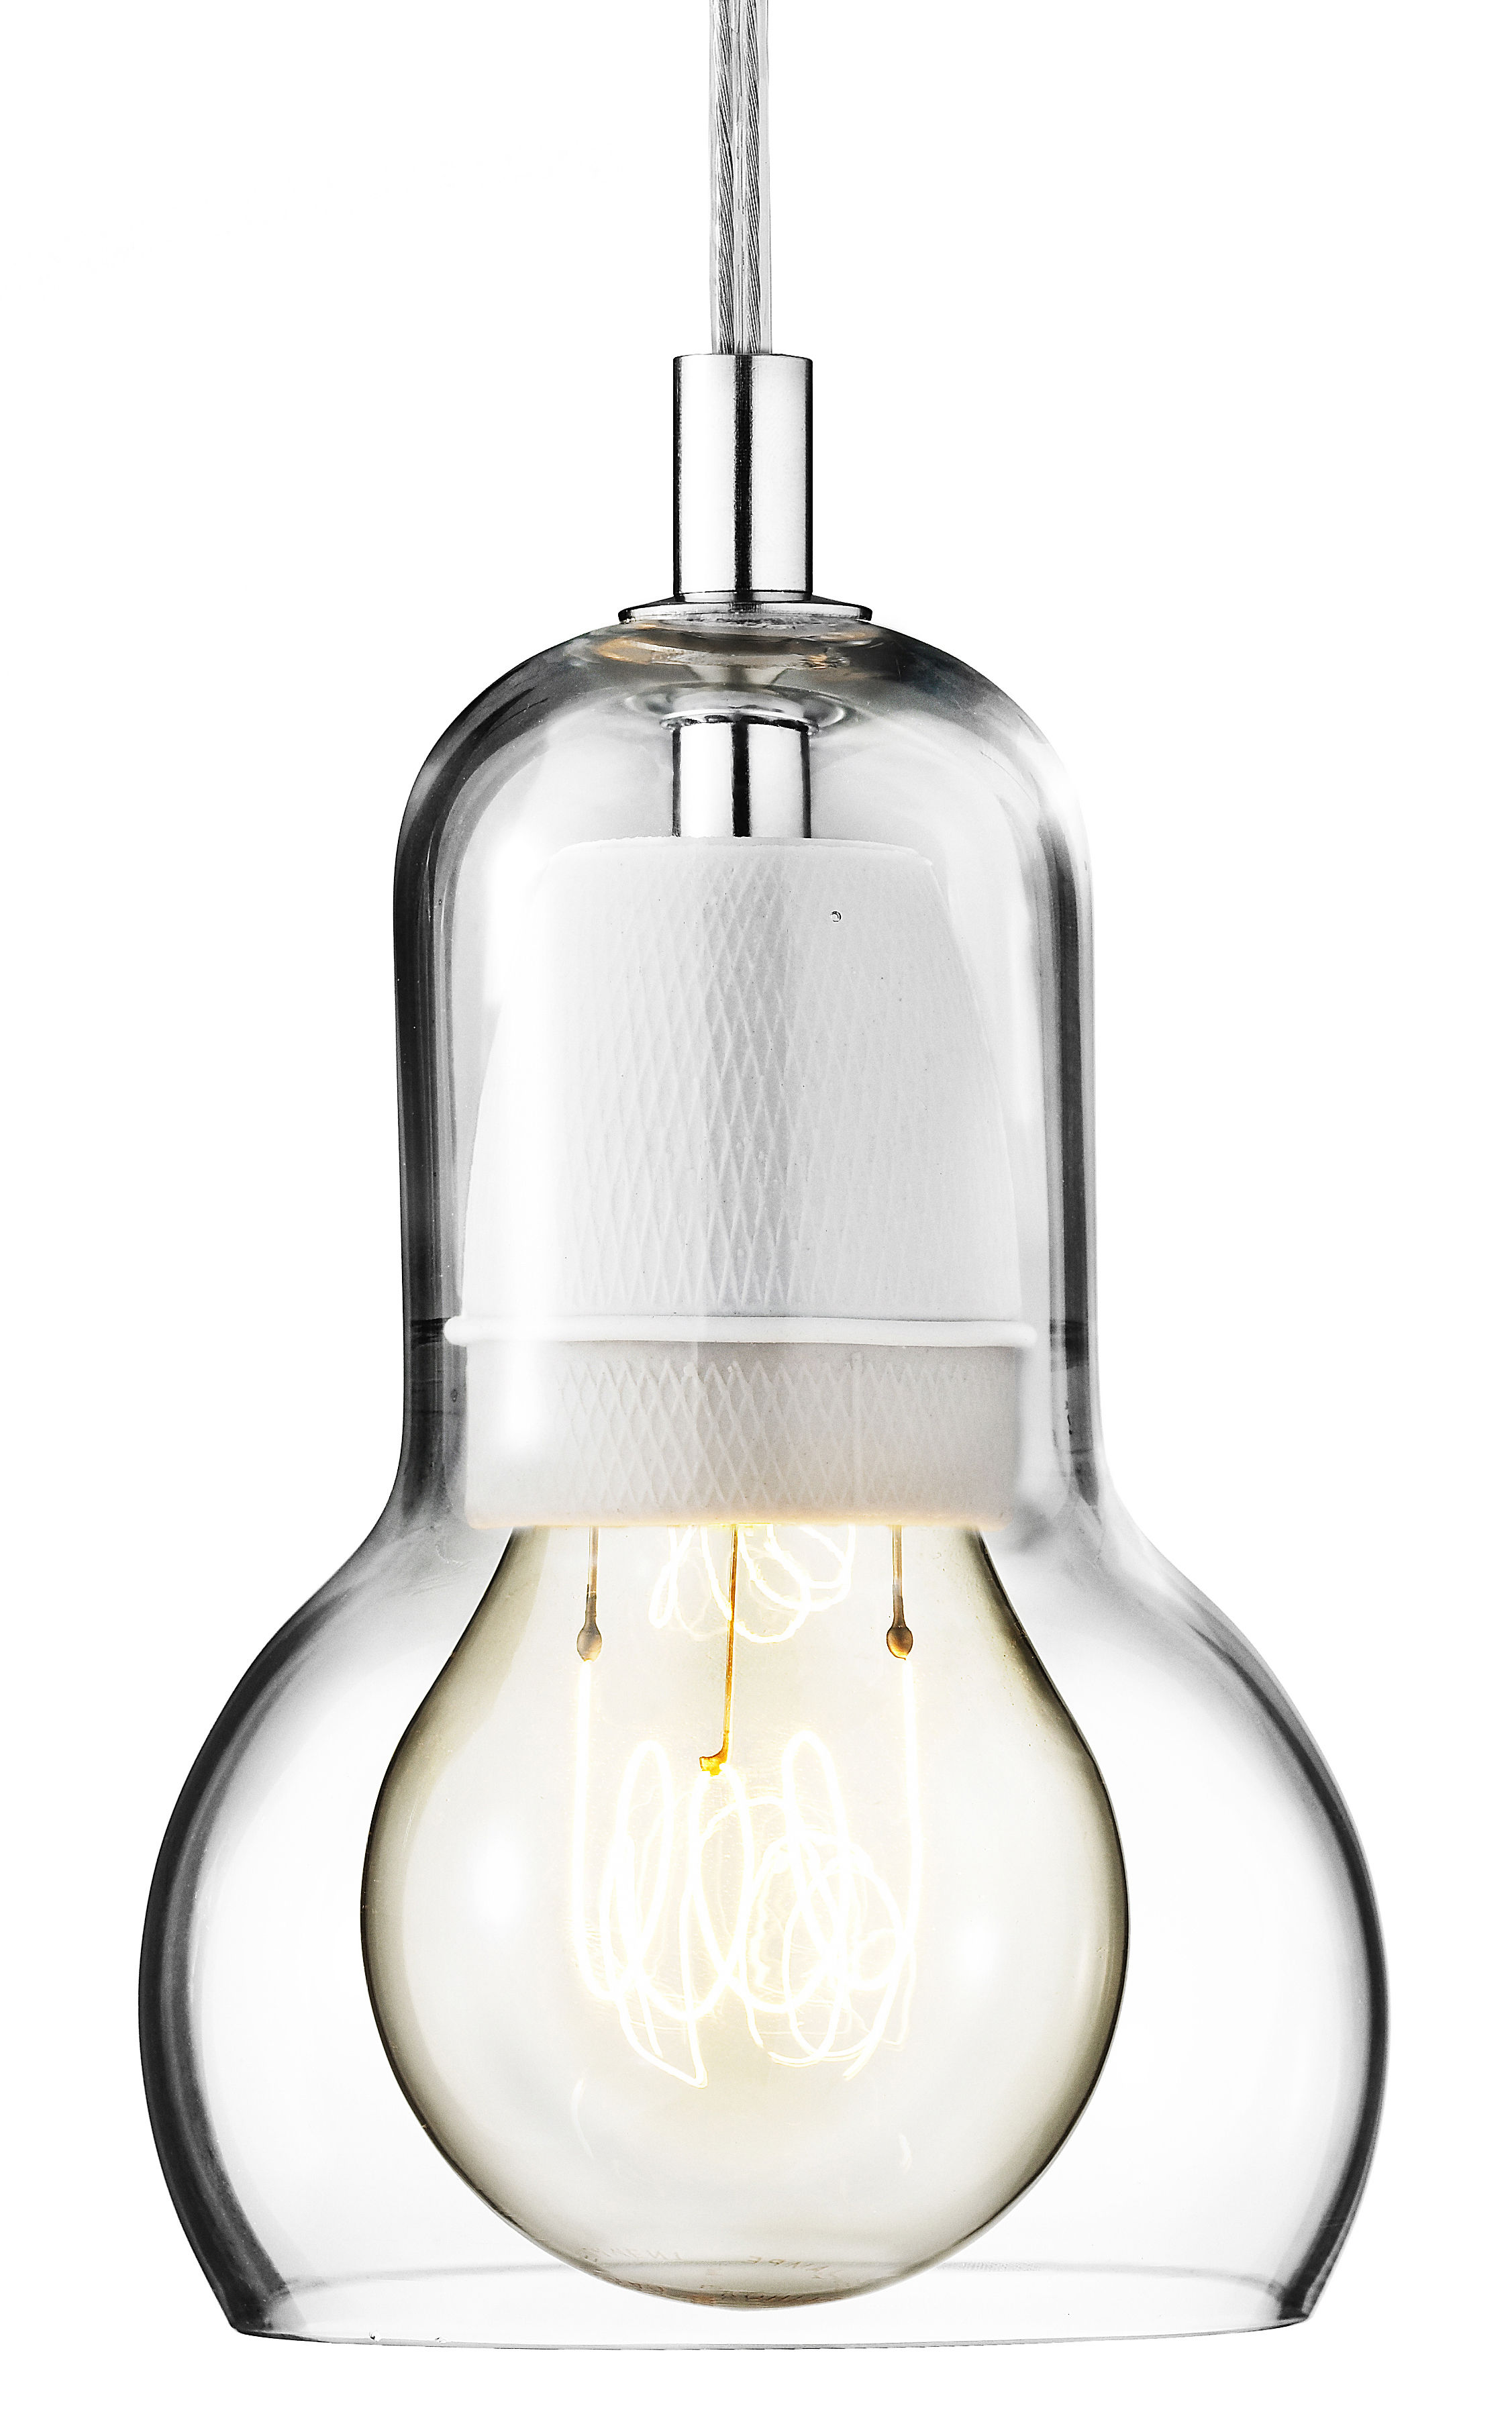 Lighting - Pendant Lighting - Bulb Pendant - Ø 11 cm - Transparent cable by And Tradition - Transparent / clear cord - Mouth blown glass